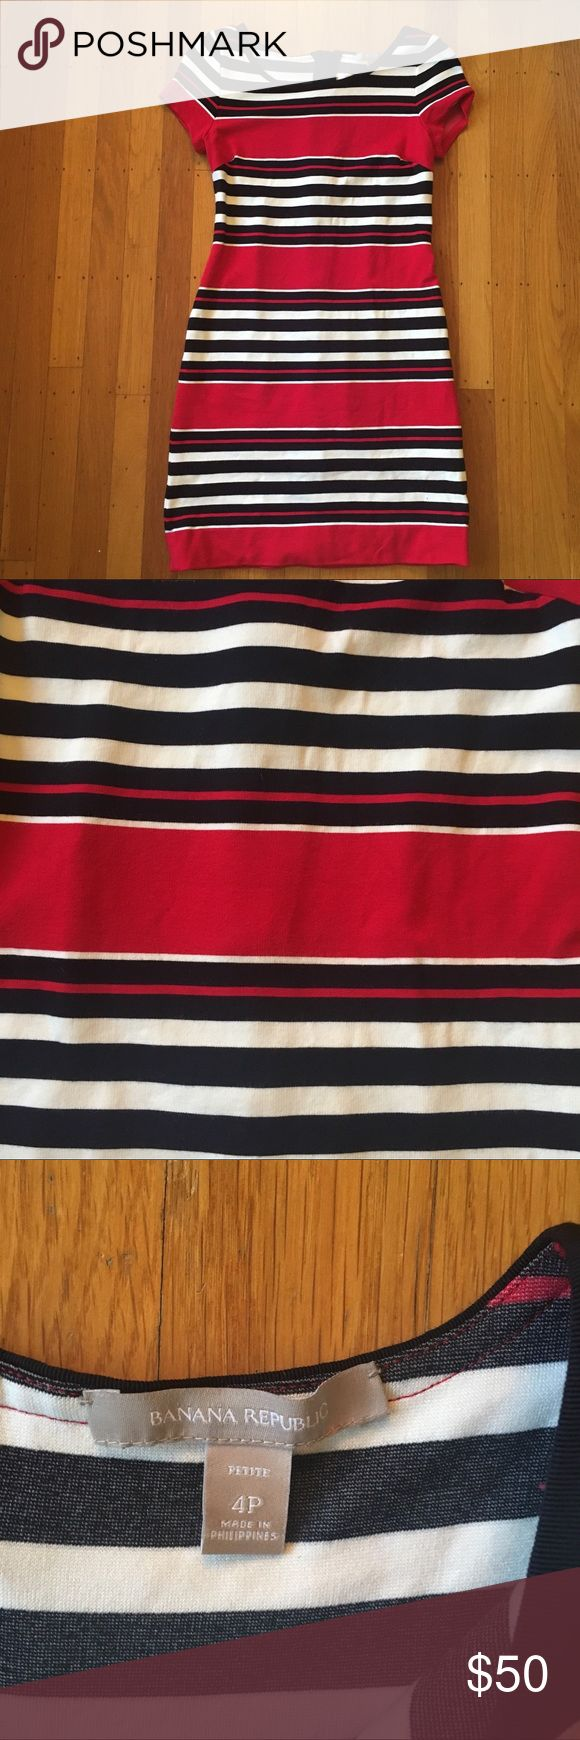 BR stripe ponte dress Cranberry reddish pink, navy blue and white striped soft knit ponte dress with short sleeves and exposed back zipper. Excellent used condition. Size 4 petite which also fits like 2 regular mini dress. Banana Republic Dresses